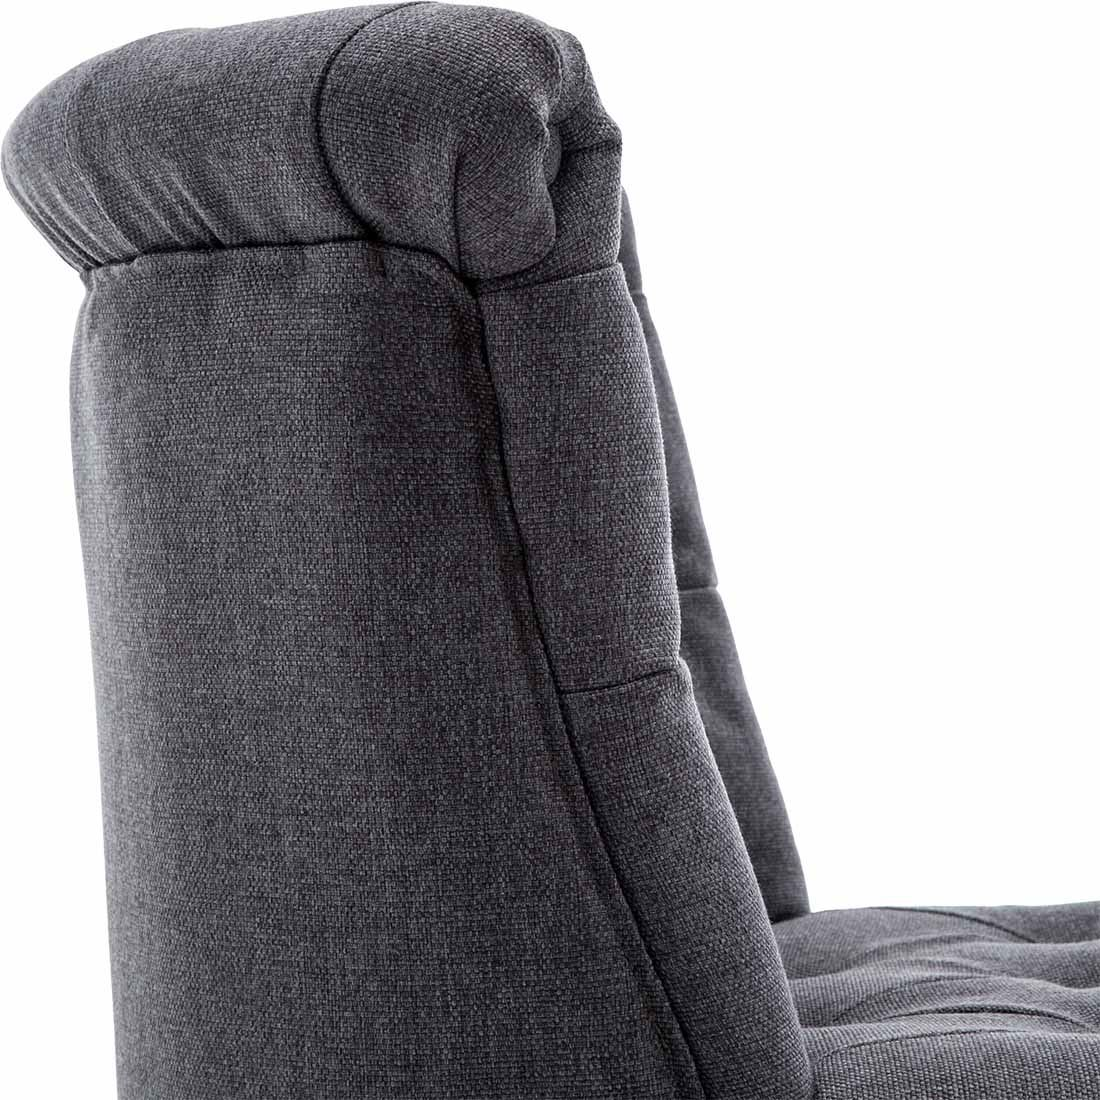 Keela-Velvet-Linen-Button-Back-Occasional-Accent-Bedroom-Lounge-Chair-Tub-Fabric thumbnail 11